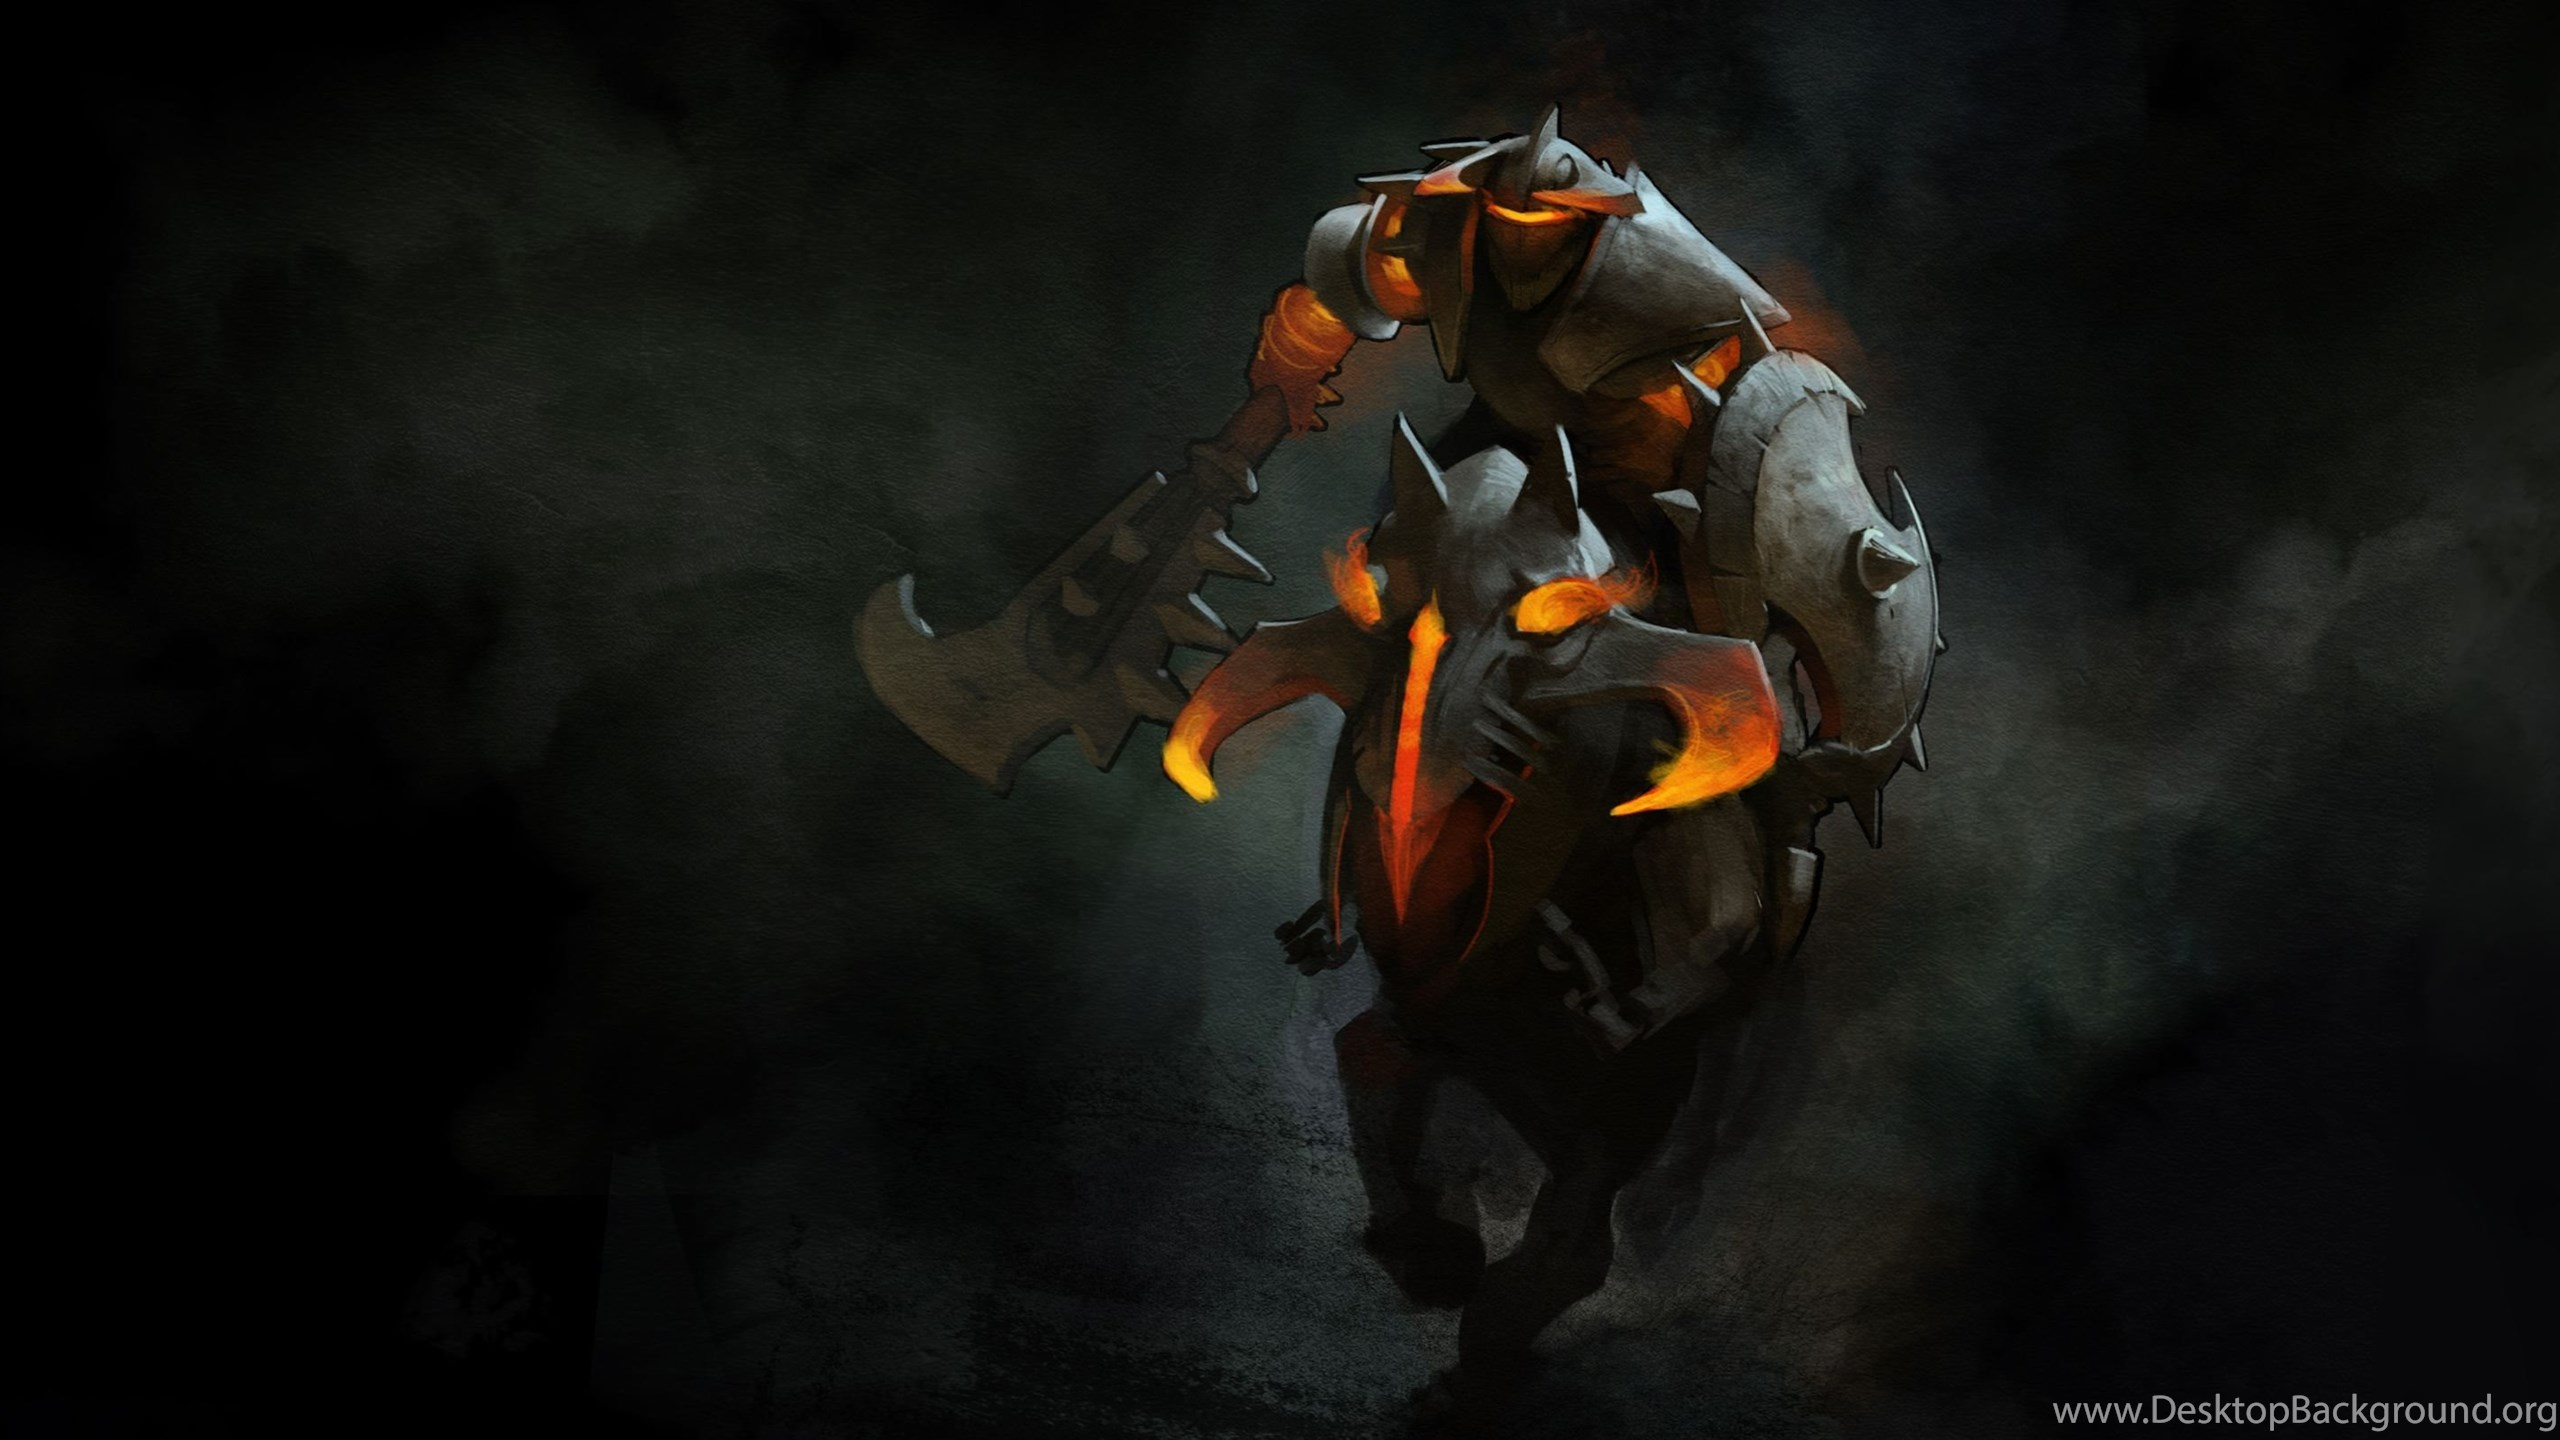 Chaos Knight Wallpapers Dota 2 Hd Wallpapers Desktop Background